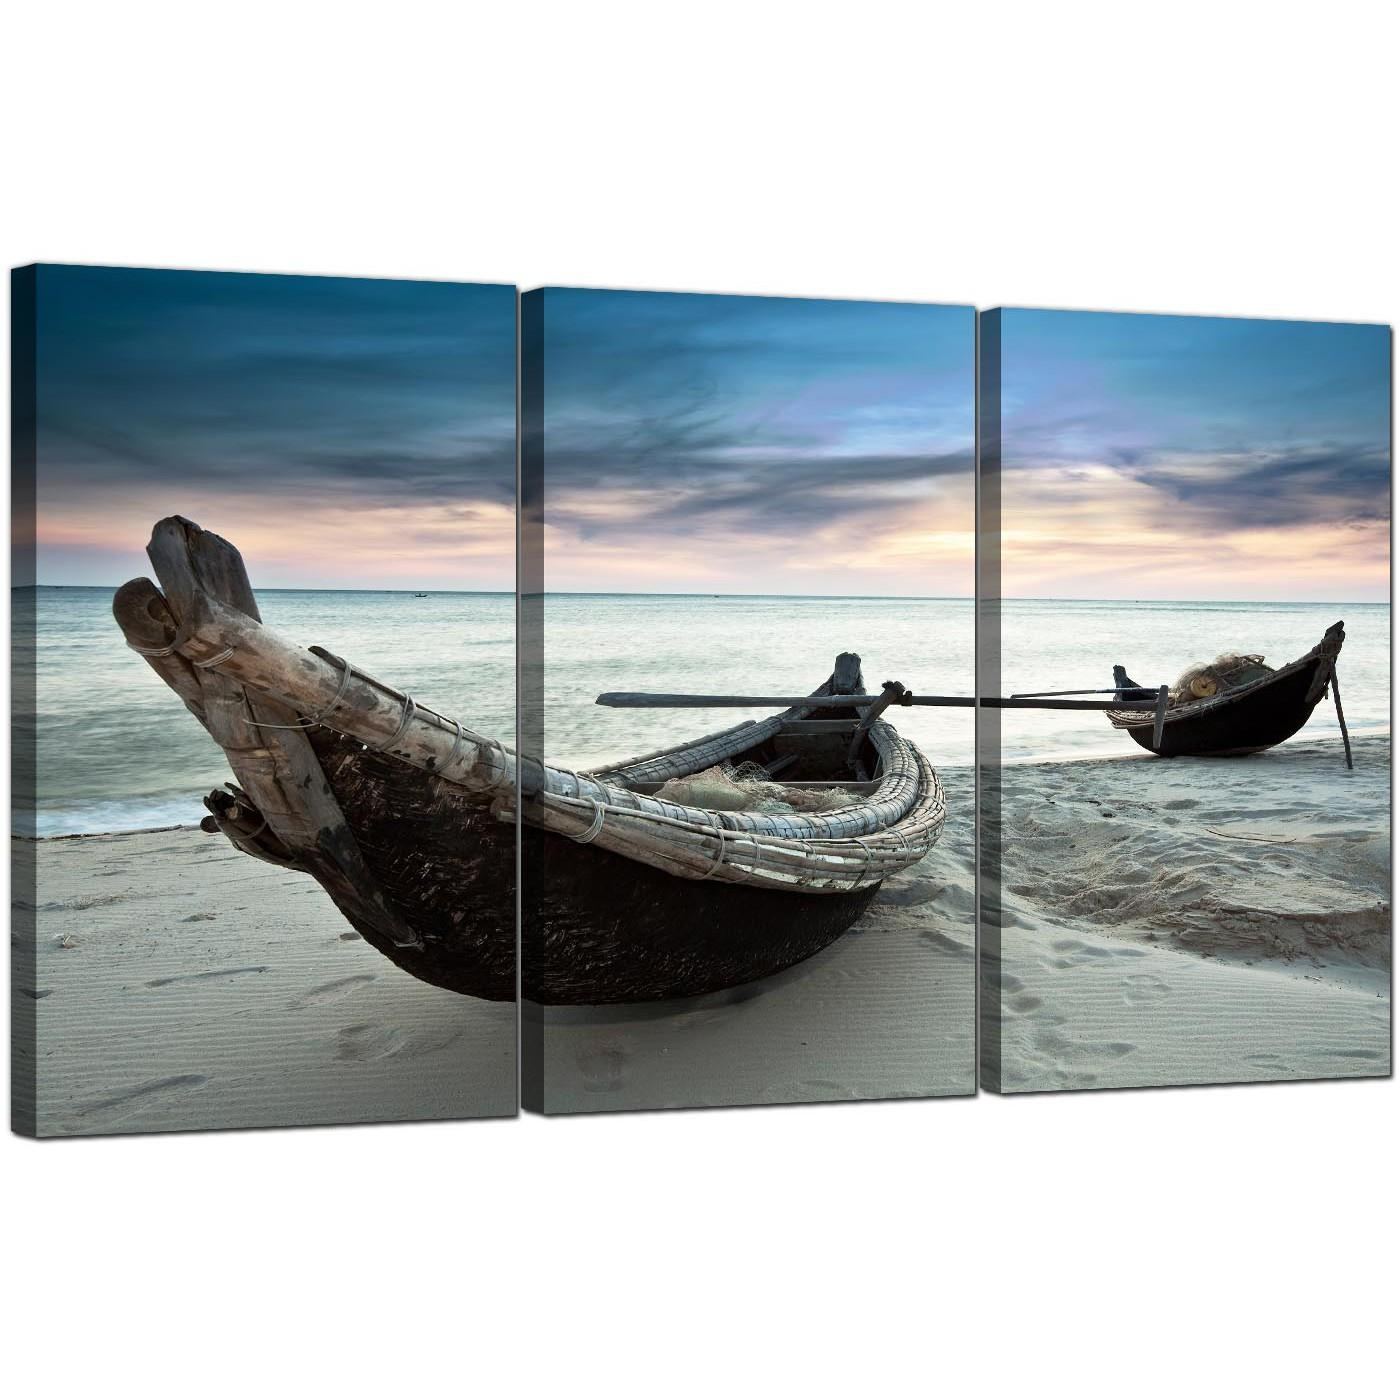 Cheap Beach Boats Canvas Wall Art Set Of Three For Your Living Room Intended For Boat Wall Art (Image 5 of 20)